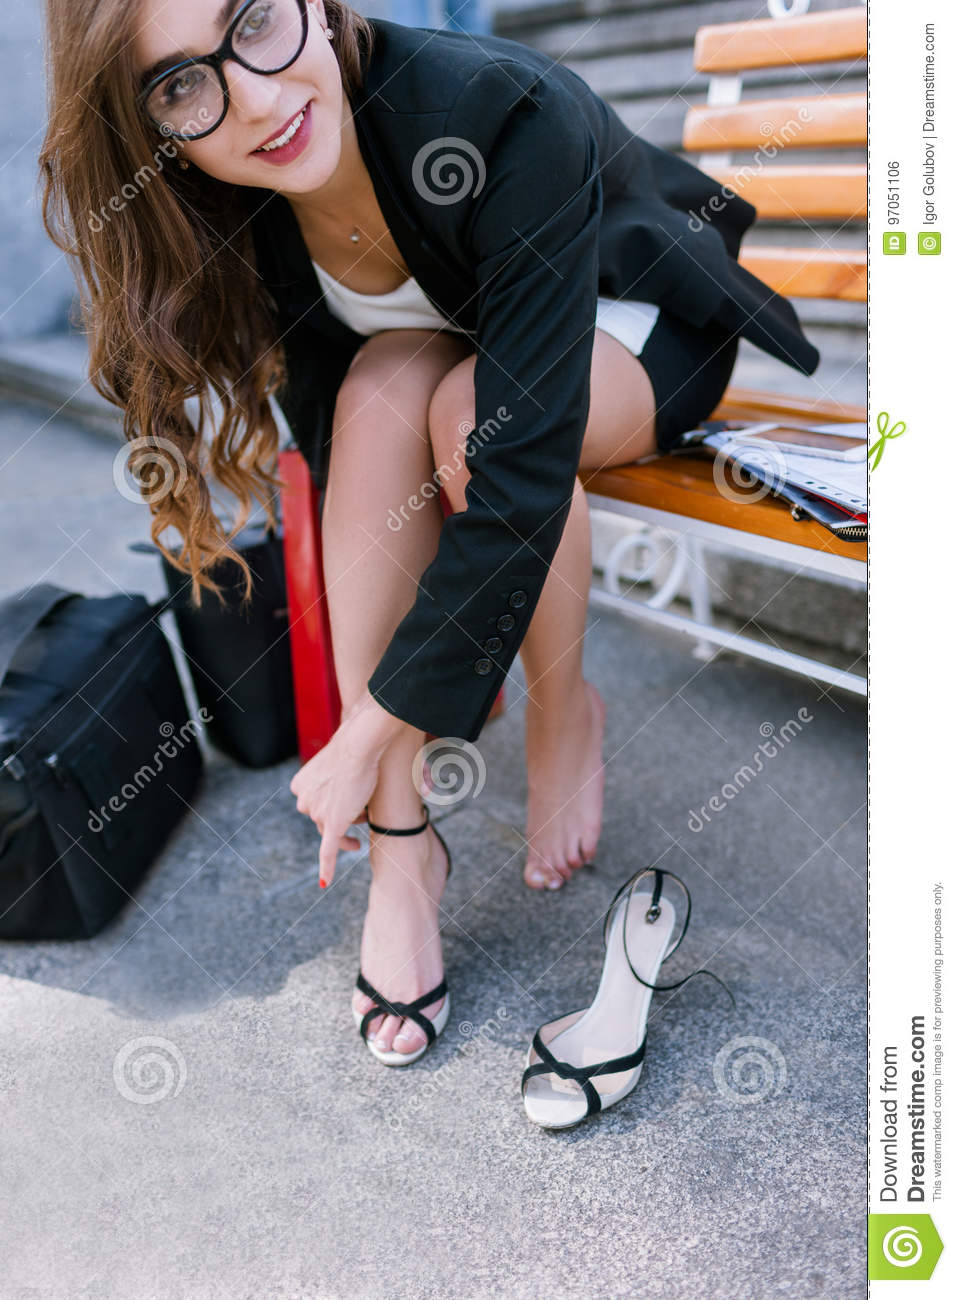 https://thumbs.dreamstime.com/z/barefoot-young-woman-tired-legs-confident-uninhibited-girl-taking-off-shoes-modern-social-behavior-97051106.jpg